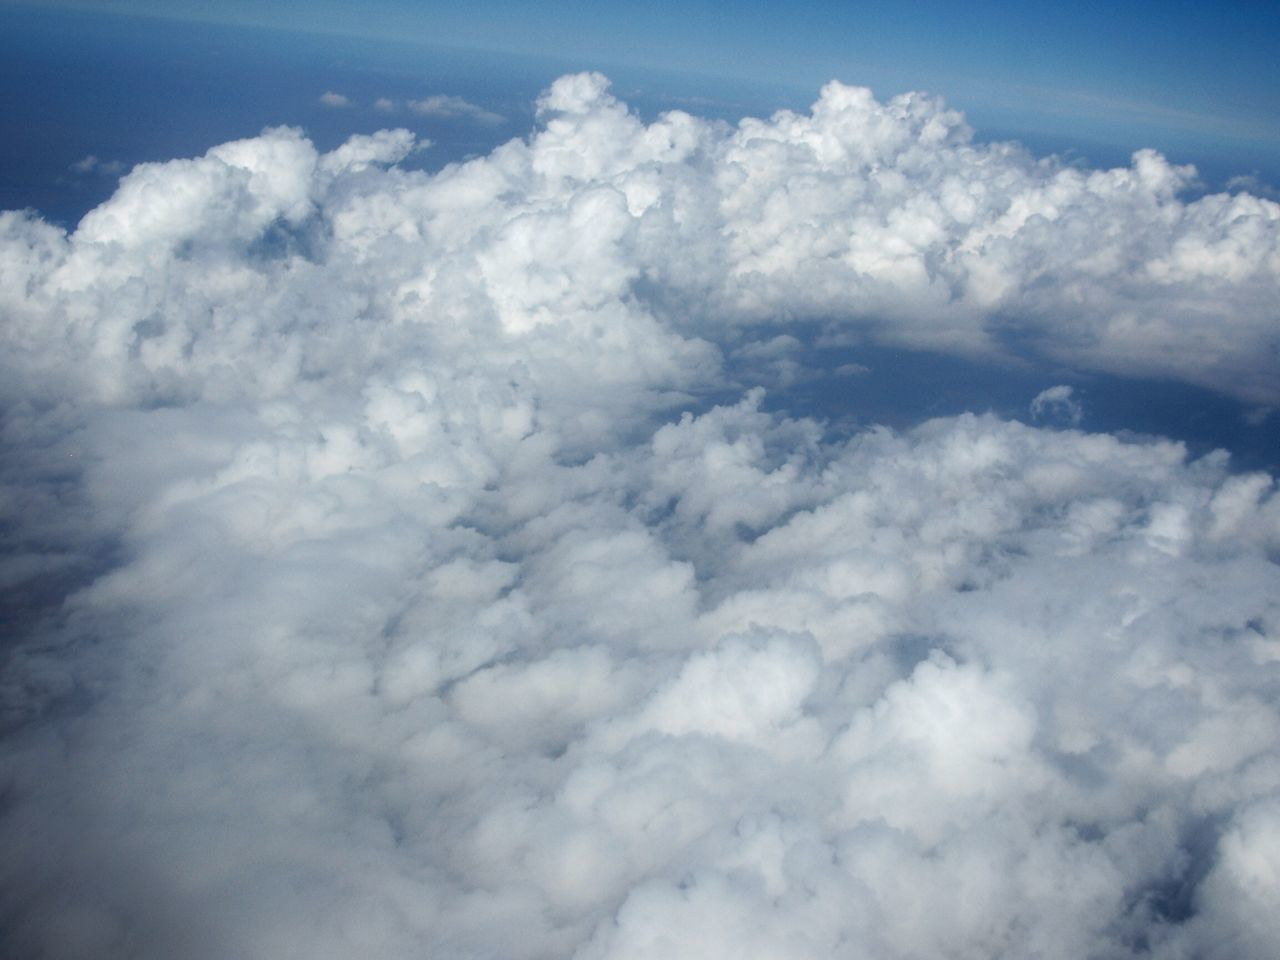 Cloud - Sky Cloudscape Sky Blue Dramatic Sky Nature Fluffy Heaven Cumulus Cloud Aerial View Backgrounds Day Beauty In Nature Airplane Outdoors No People Storm Cloud Storm